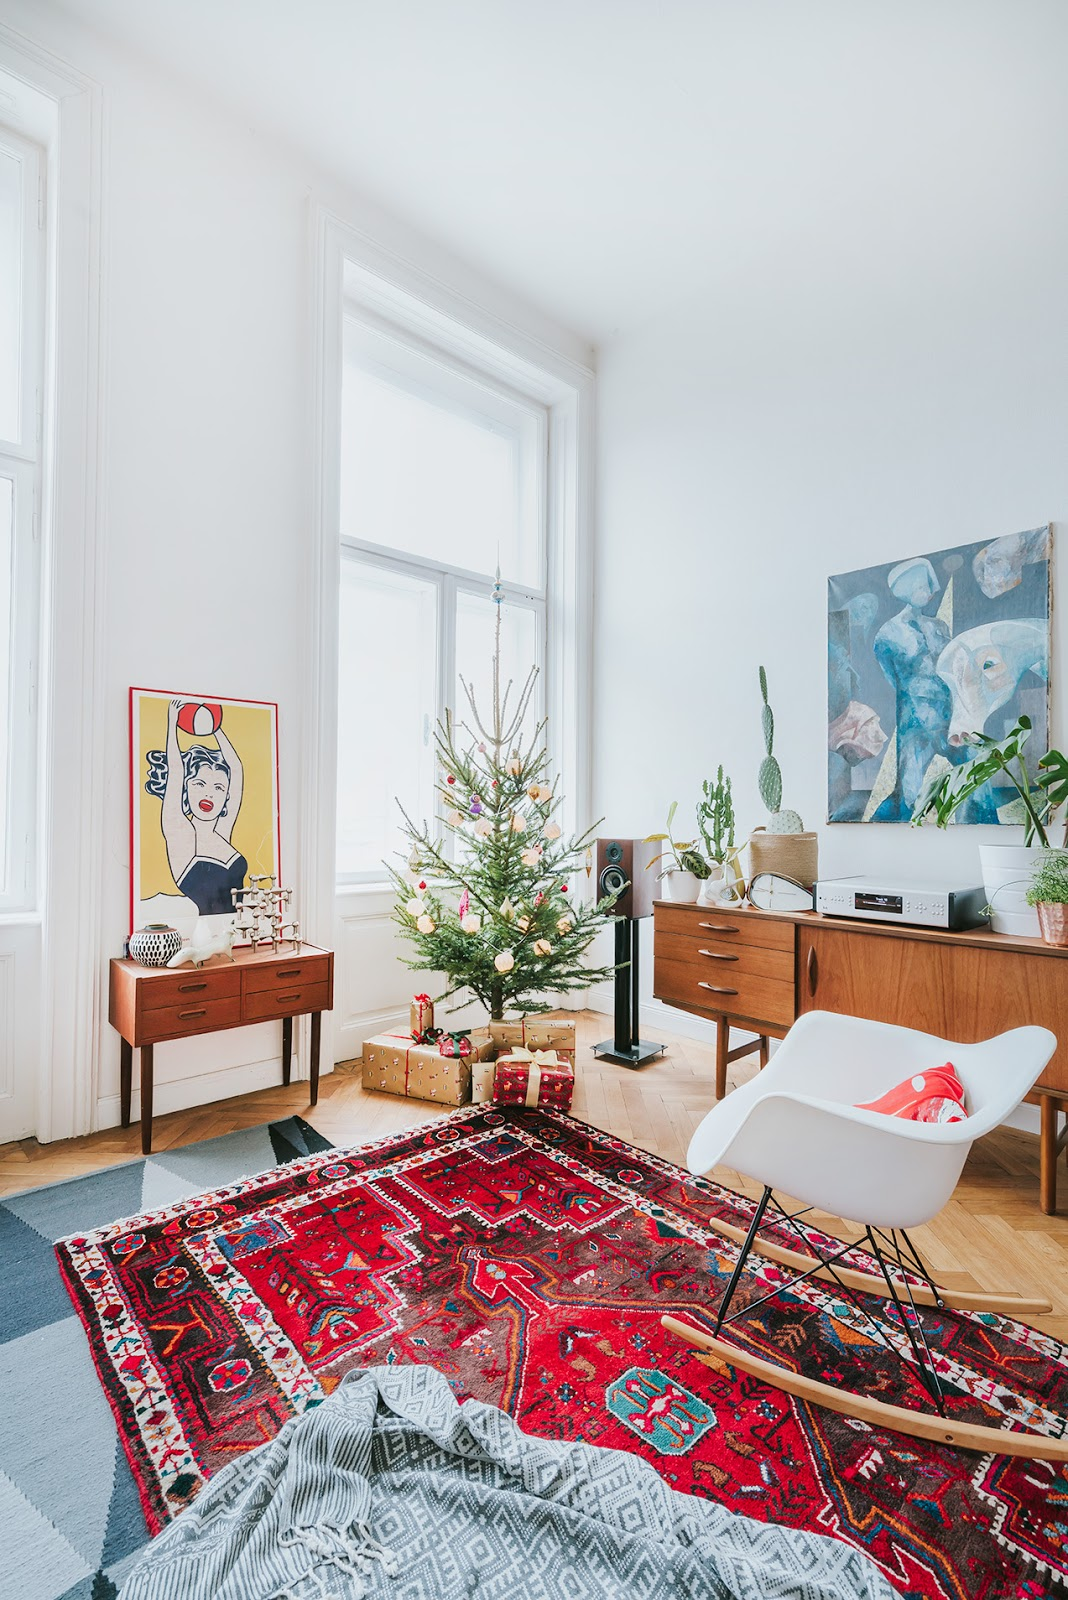 boho interior with a christmas tree, oriental rug and mid century modern furniture.